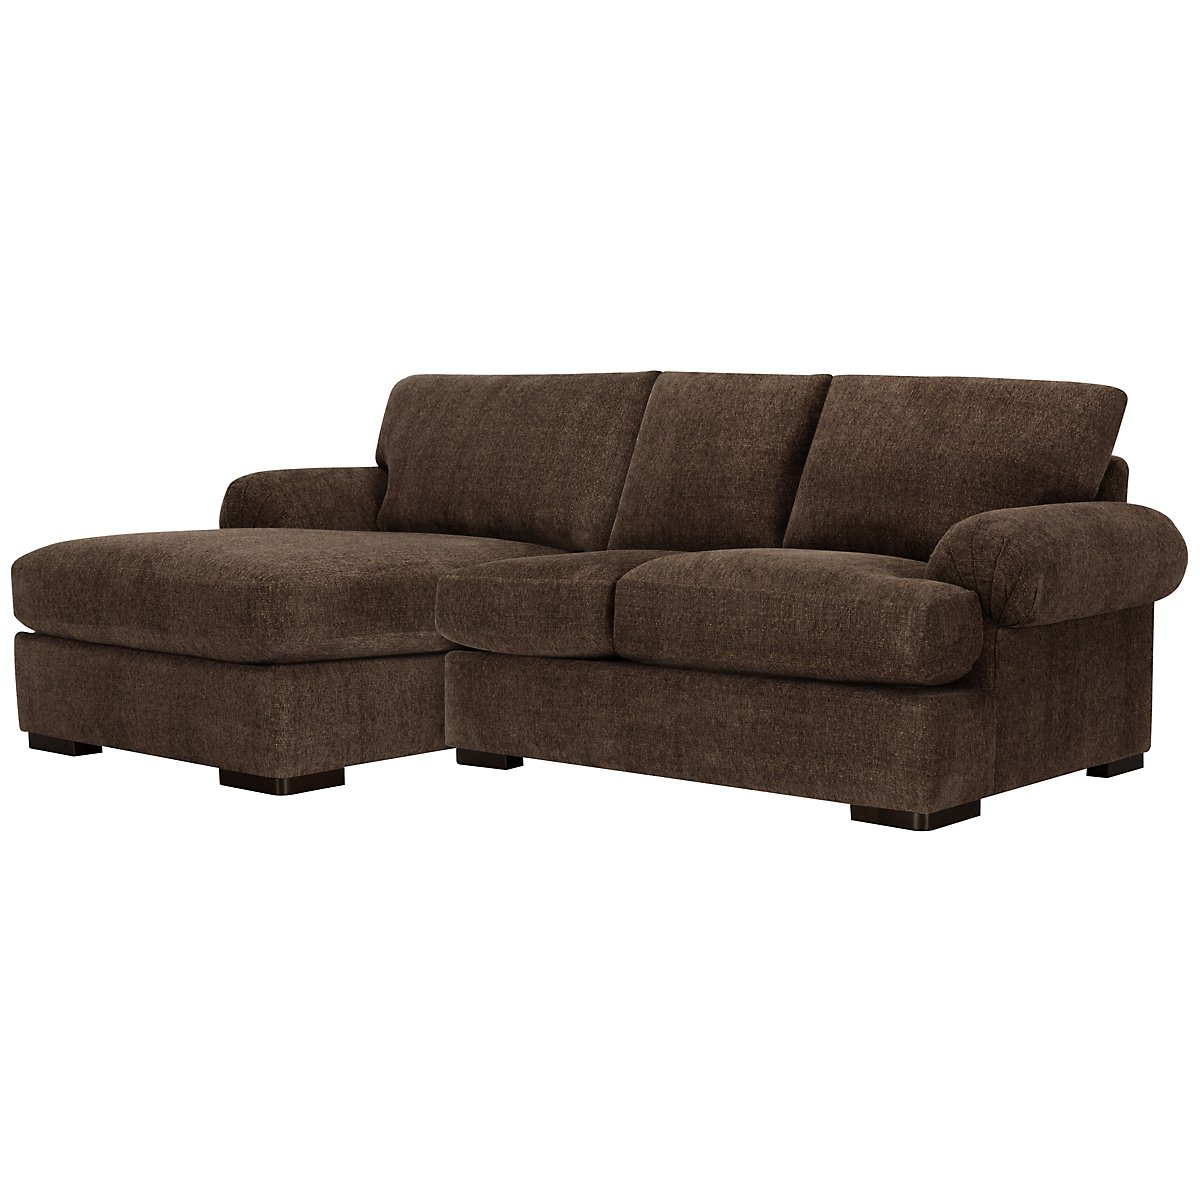 City furniture belair dk brown microfiber left chaise for Brown microfiber chaise lounge